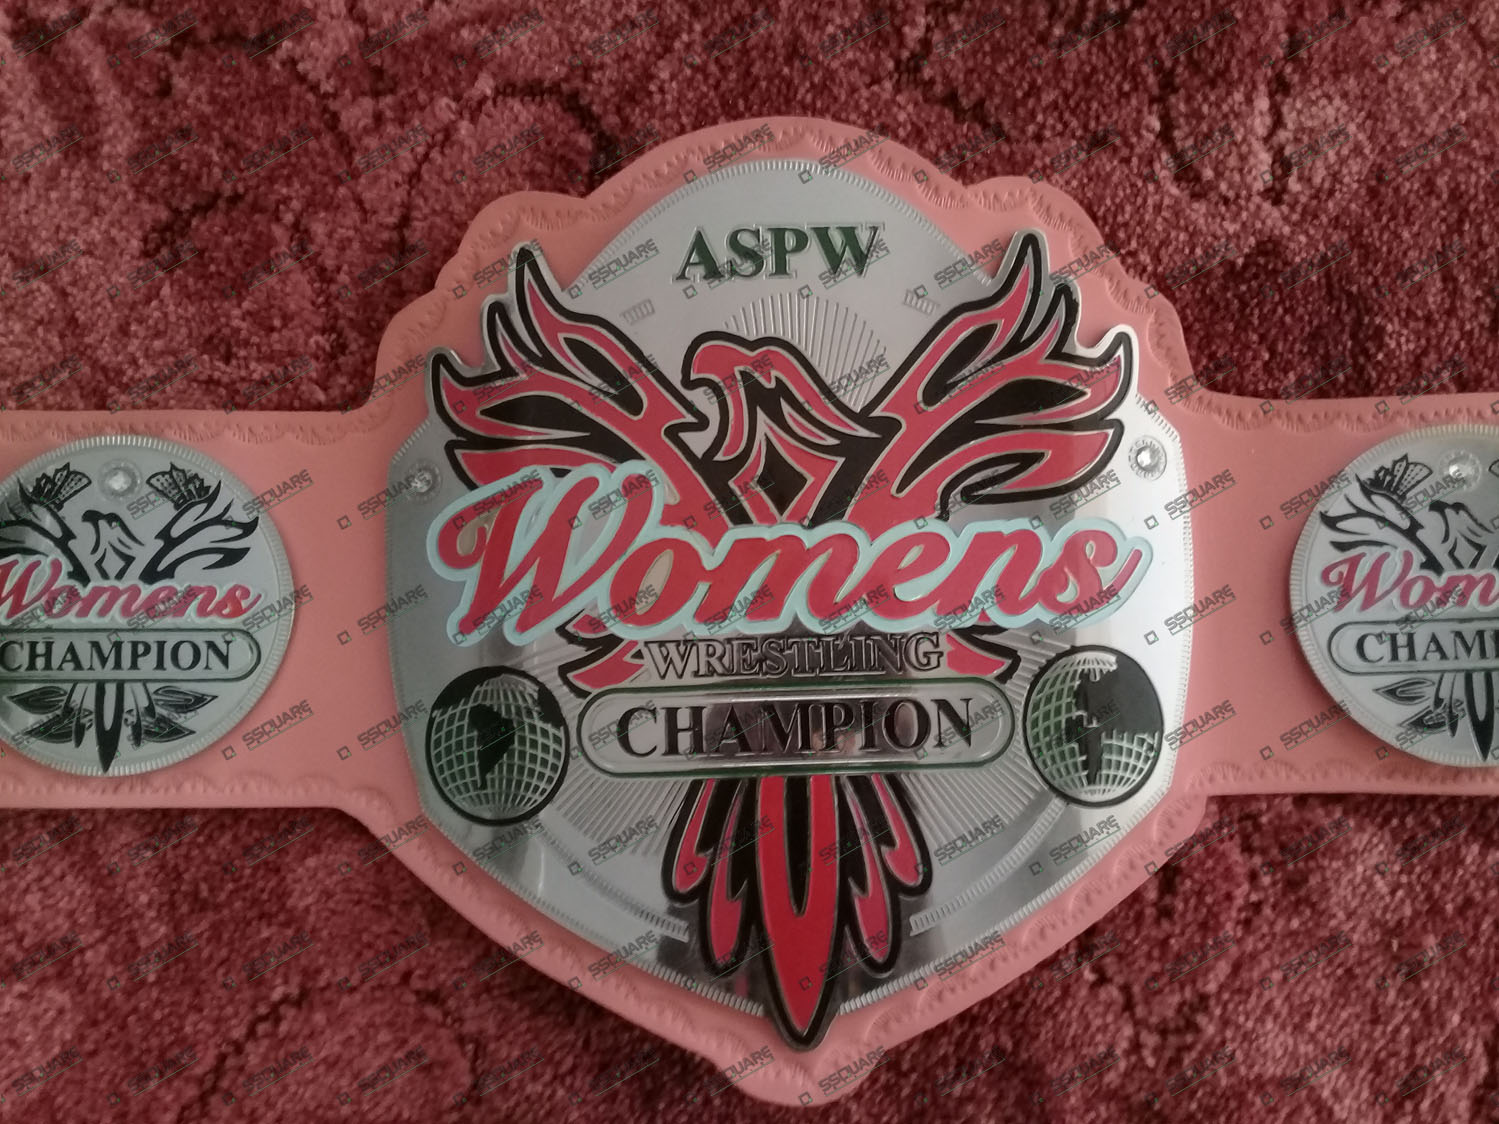 ASPW Women's Wrestling Champion Belt